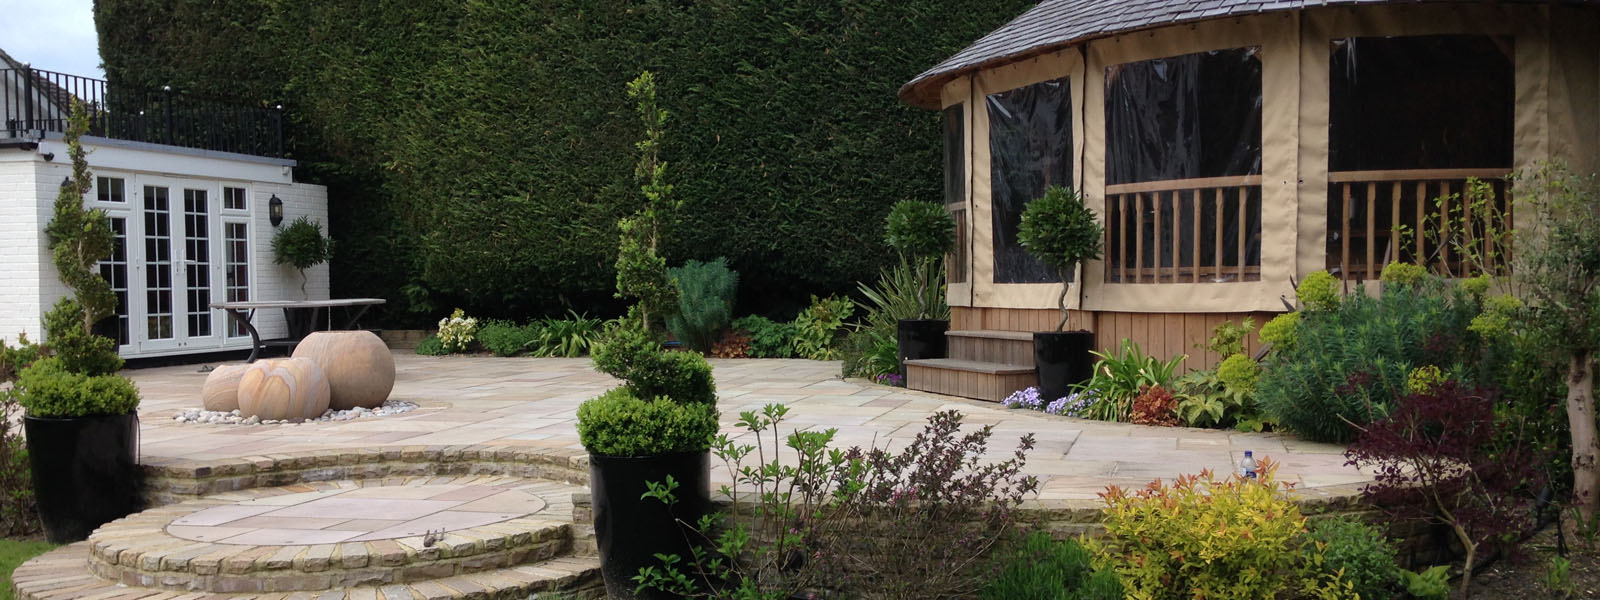 landscapers Hertford Heath